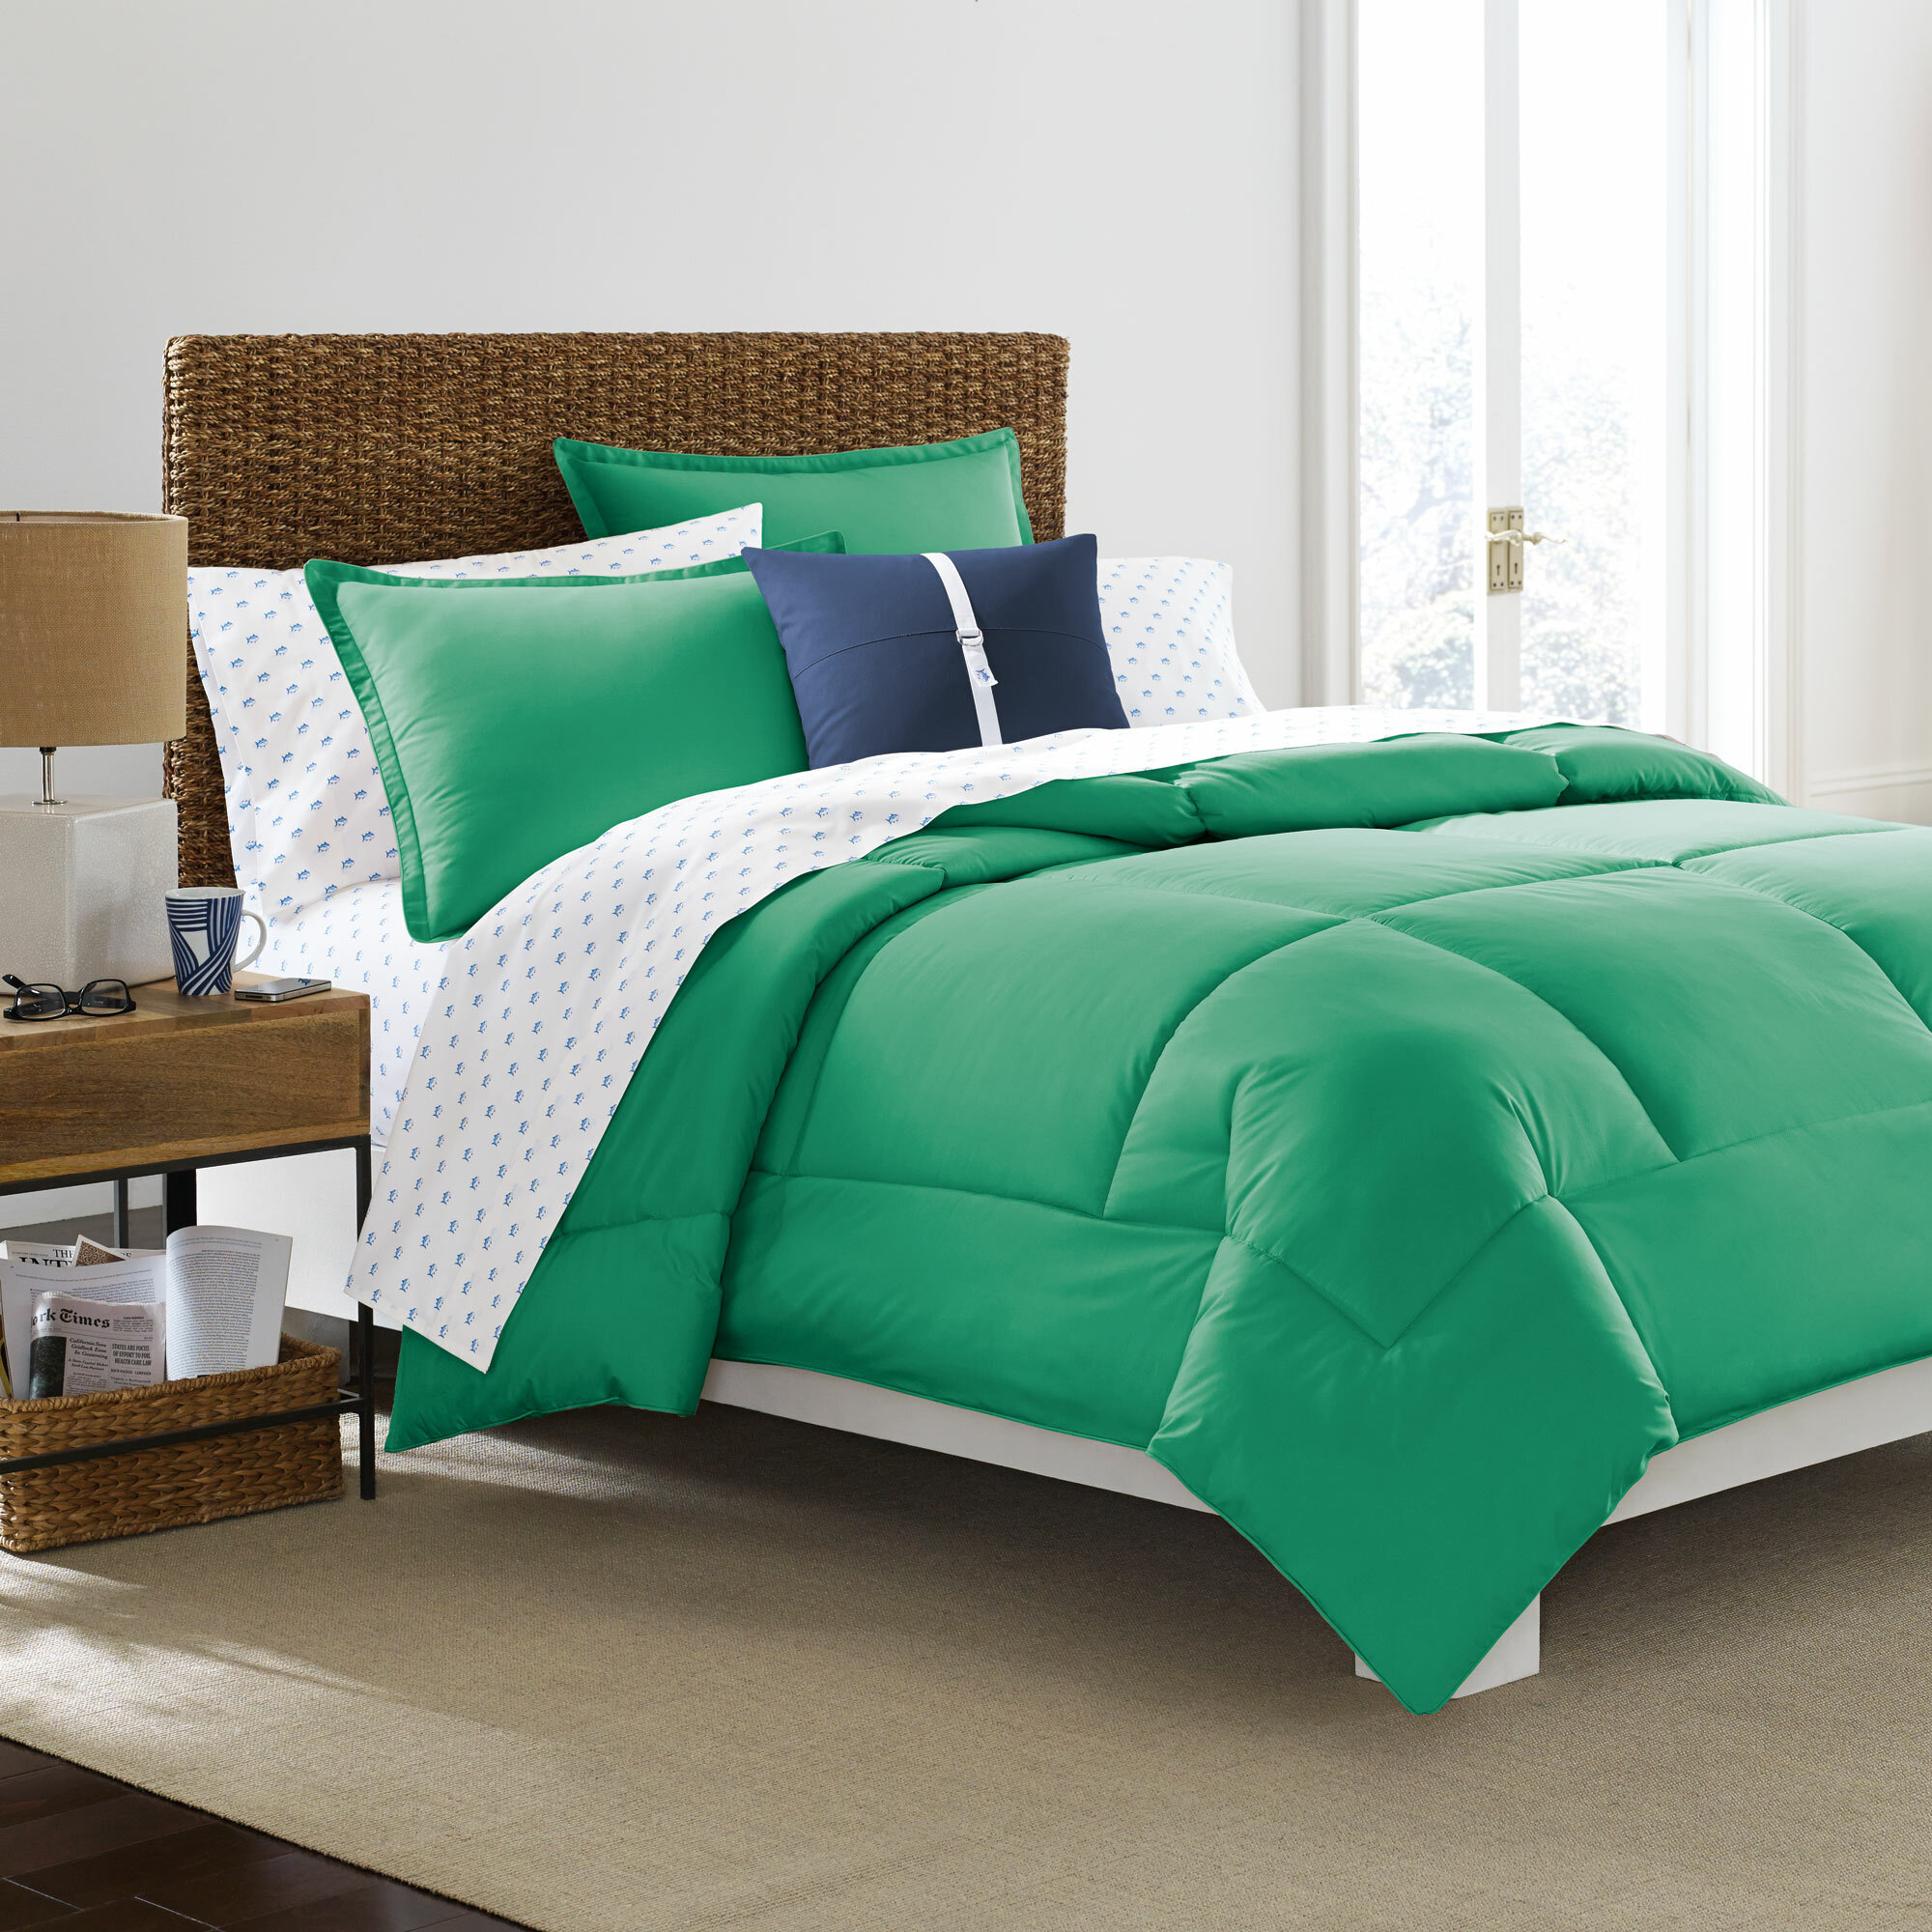 interior color set and reversible the matching solid cover colors envelope includes comforter features shams piece button sham tucked pin duvet harper on